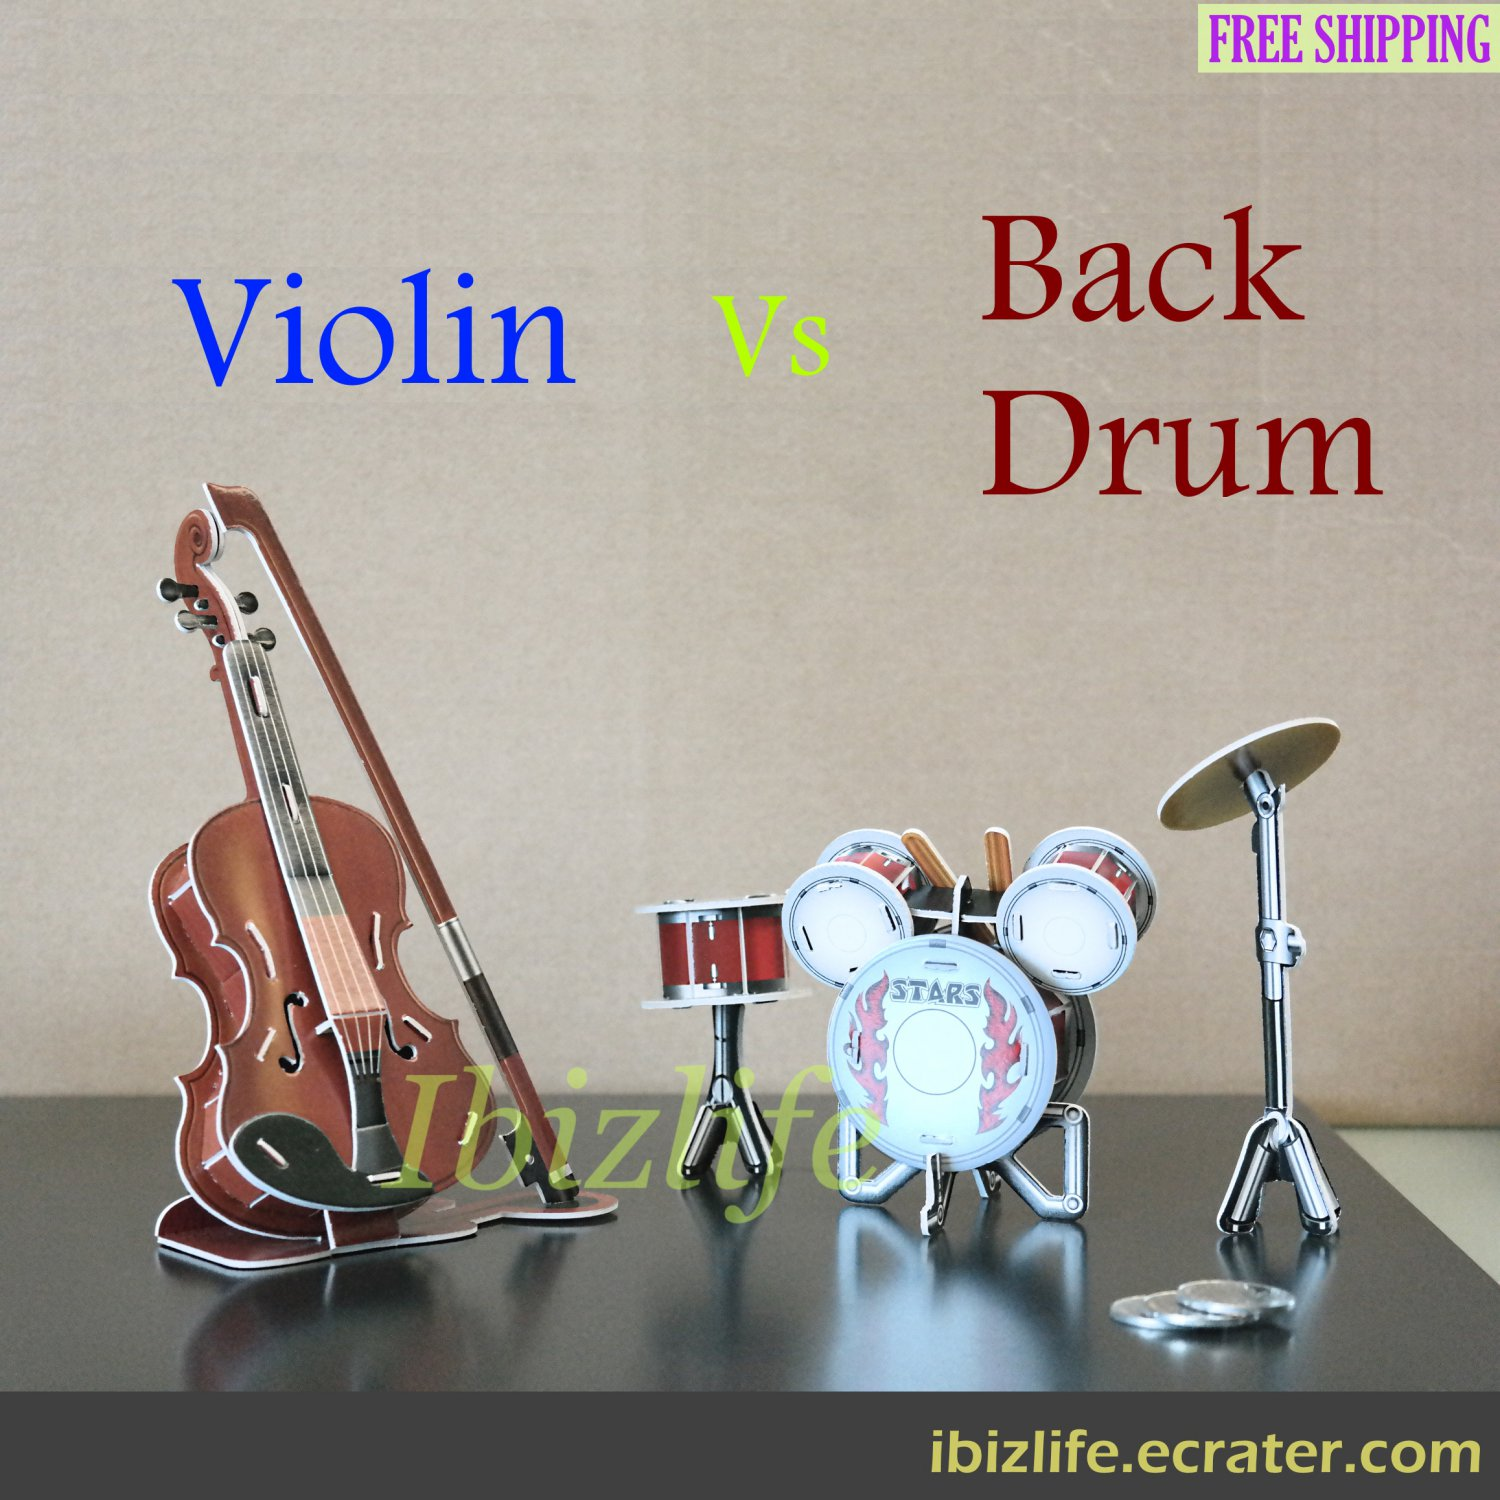 3D PUZZLE DIY jigsaw model Music Band set as gift - 2 Violin & Drum (PC66)